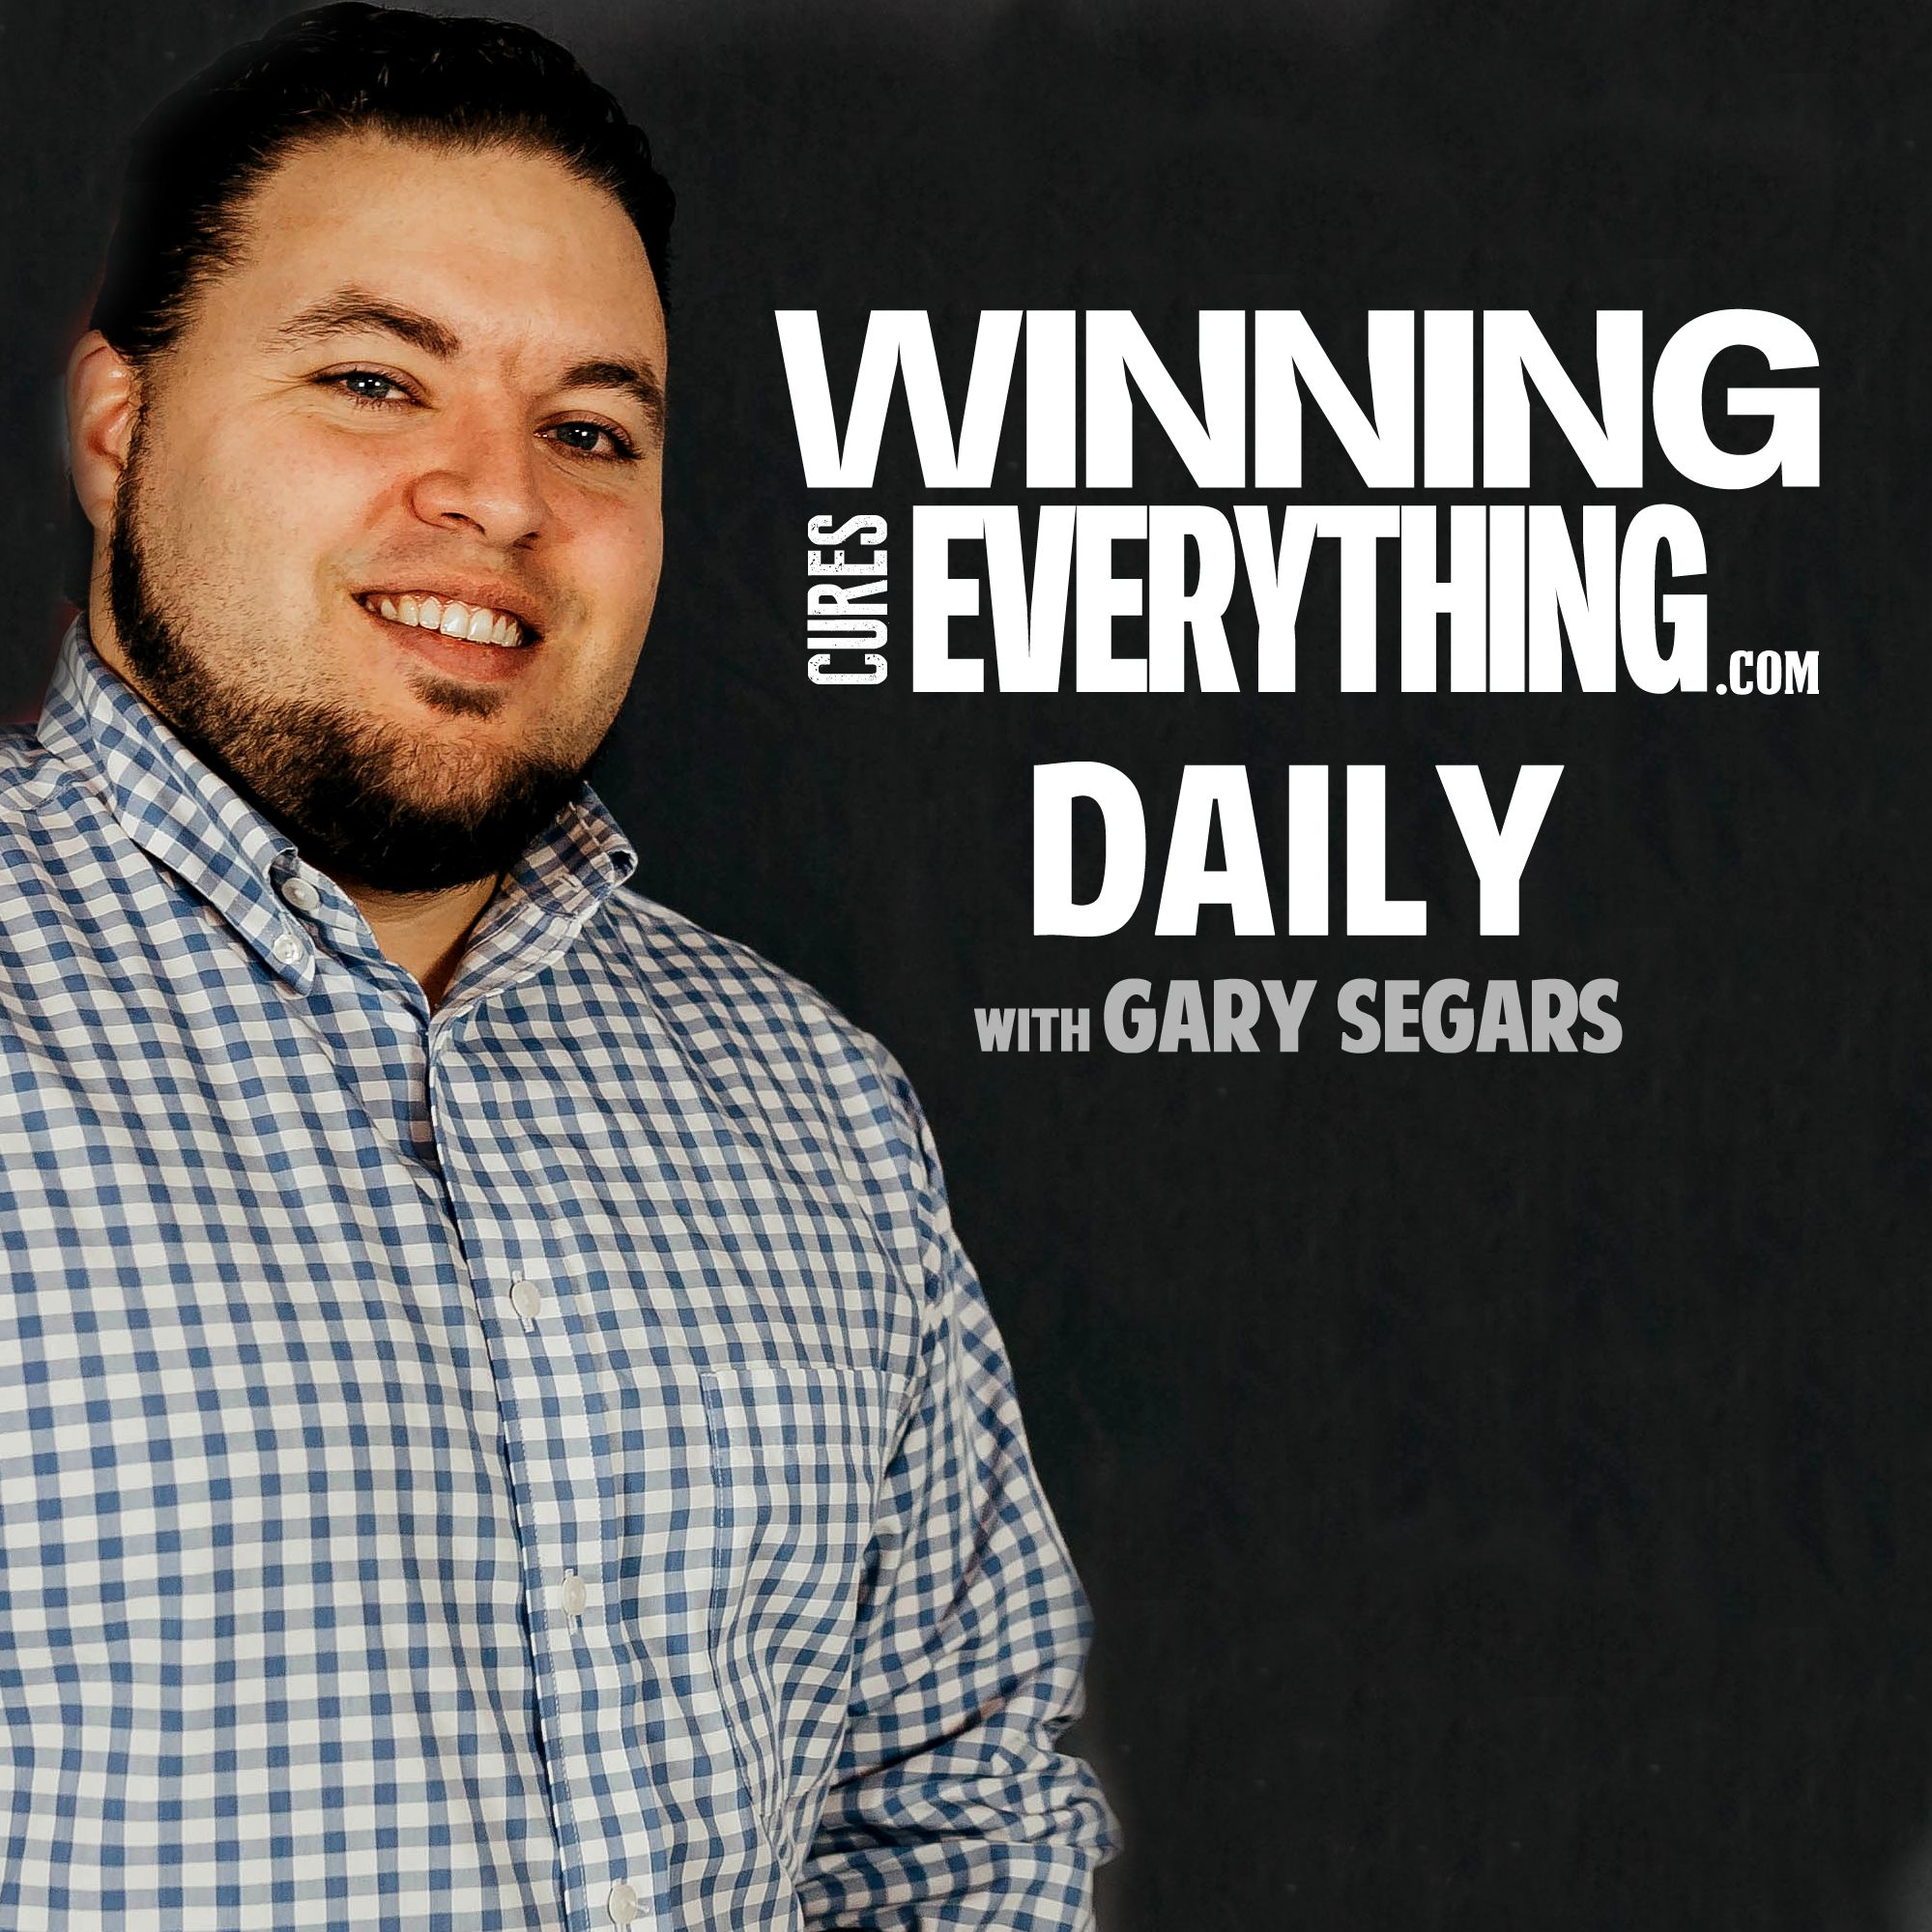 wce-daily-2-7-19-and-8211-no-mobile-gambling-in-mississippi-marc-gasol-to-raptors-and-ncaab-picks_thumbnail.png